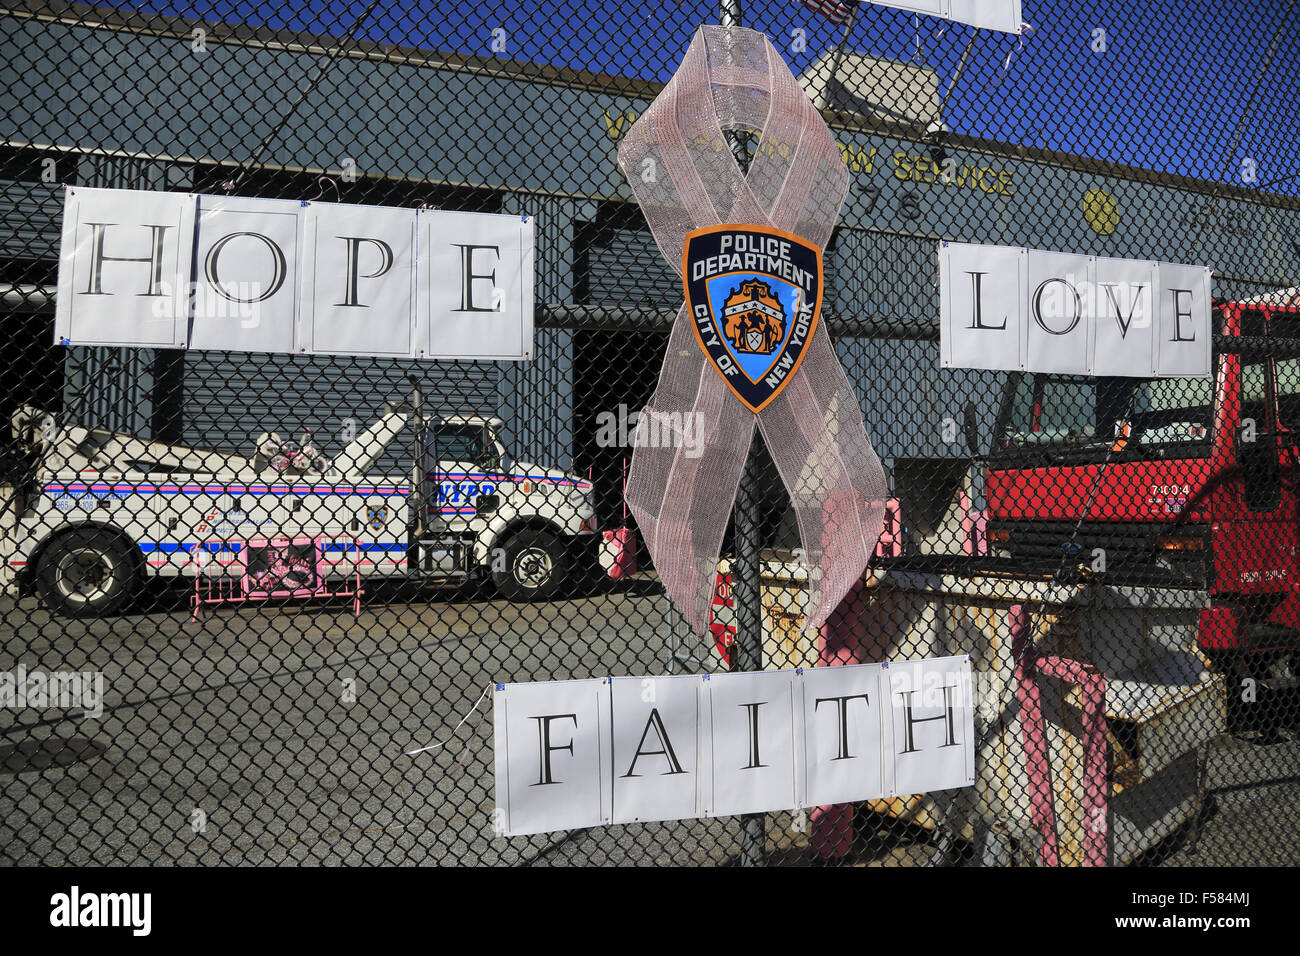 New York Police Department NYPD Violation Tow Service at Pier 76, west side Manhattan, New York City, USA - Stock Image